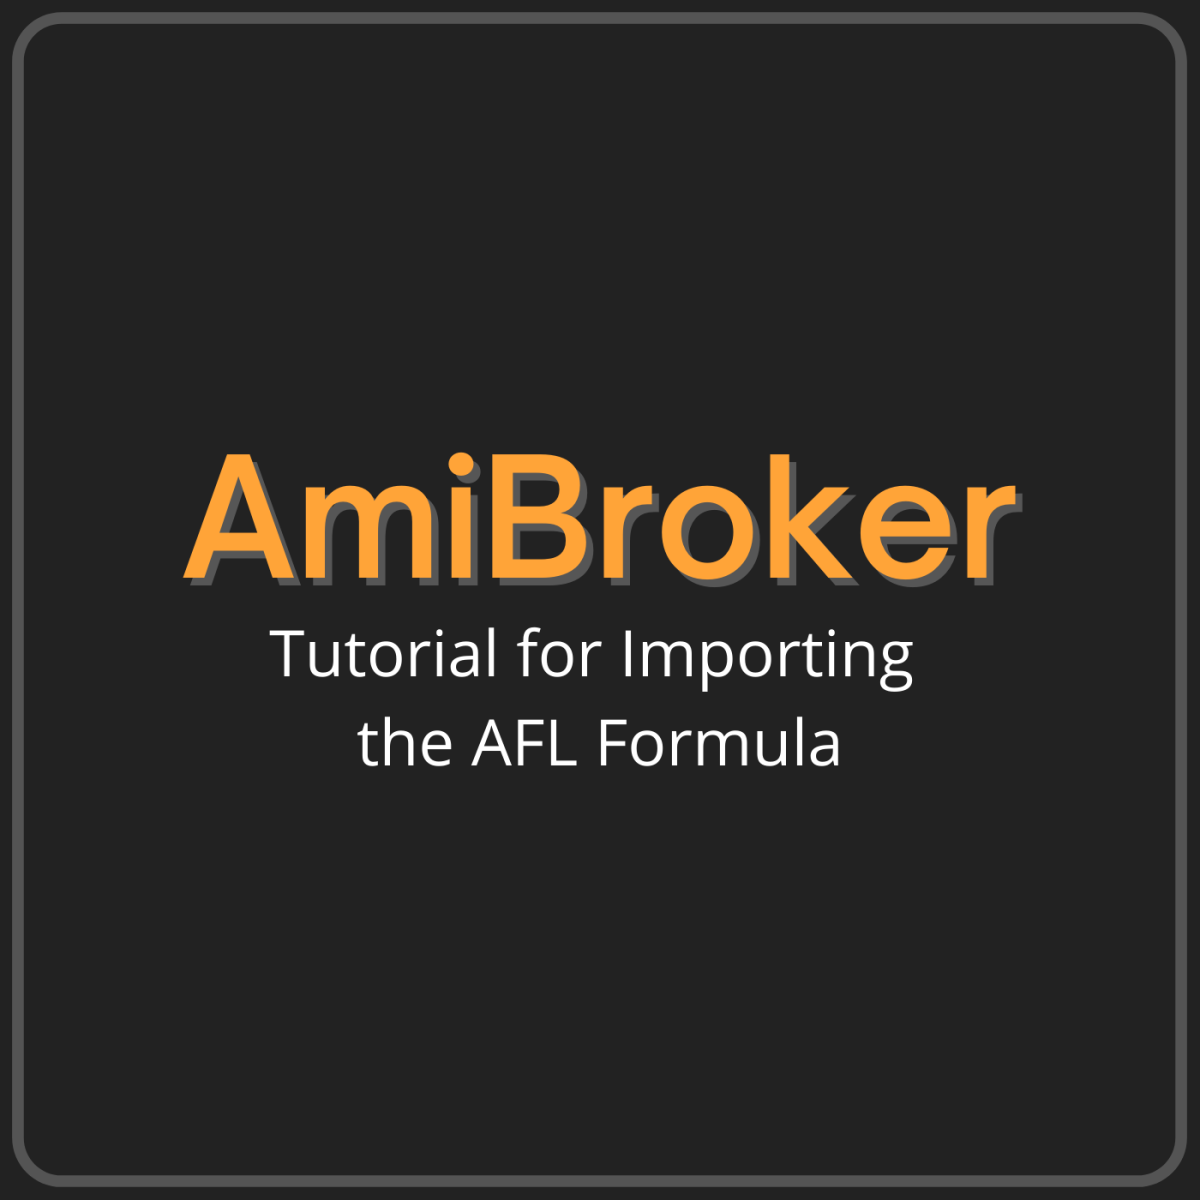 Learn how to import the AFL formula or AFL codes into AmiBroker with this step-by-step tutorial.